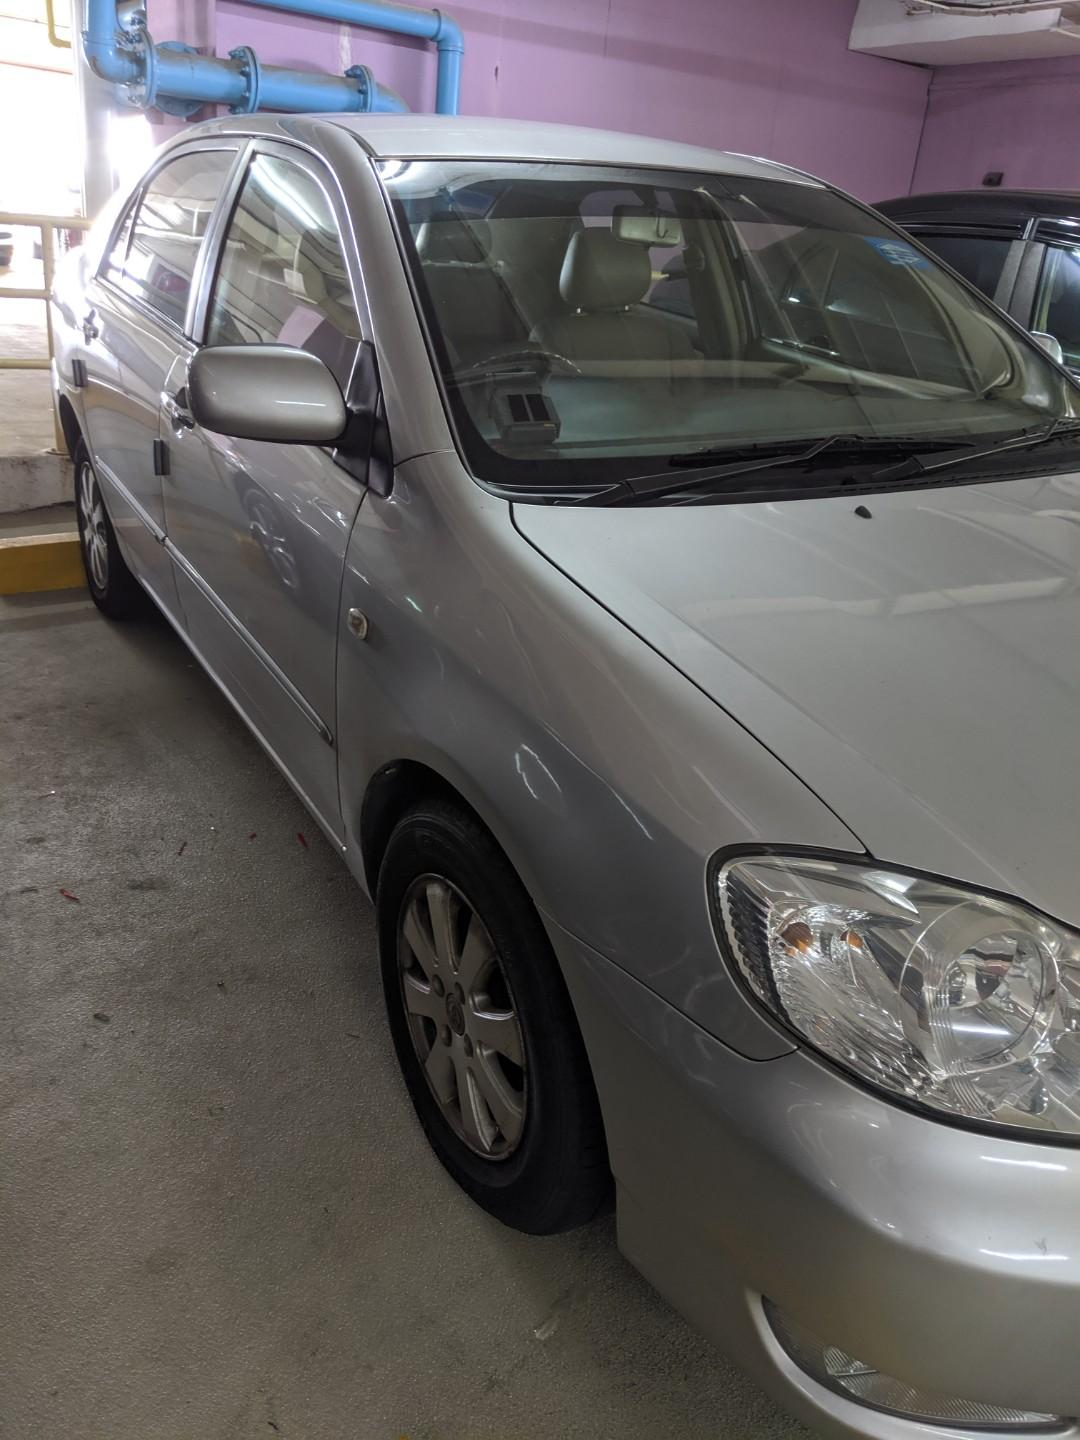 Toyota Altis 1.6 (PHV & Personal Usage) (Rent / Rental / Lease)